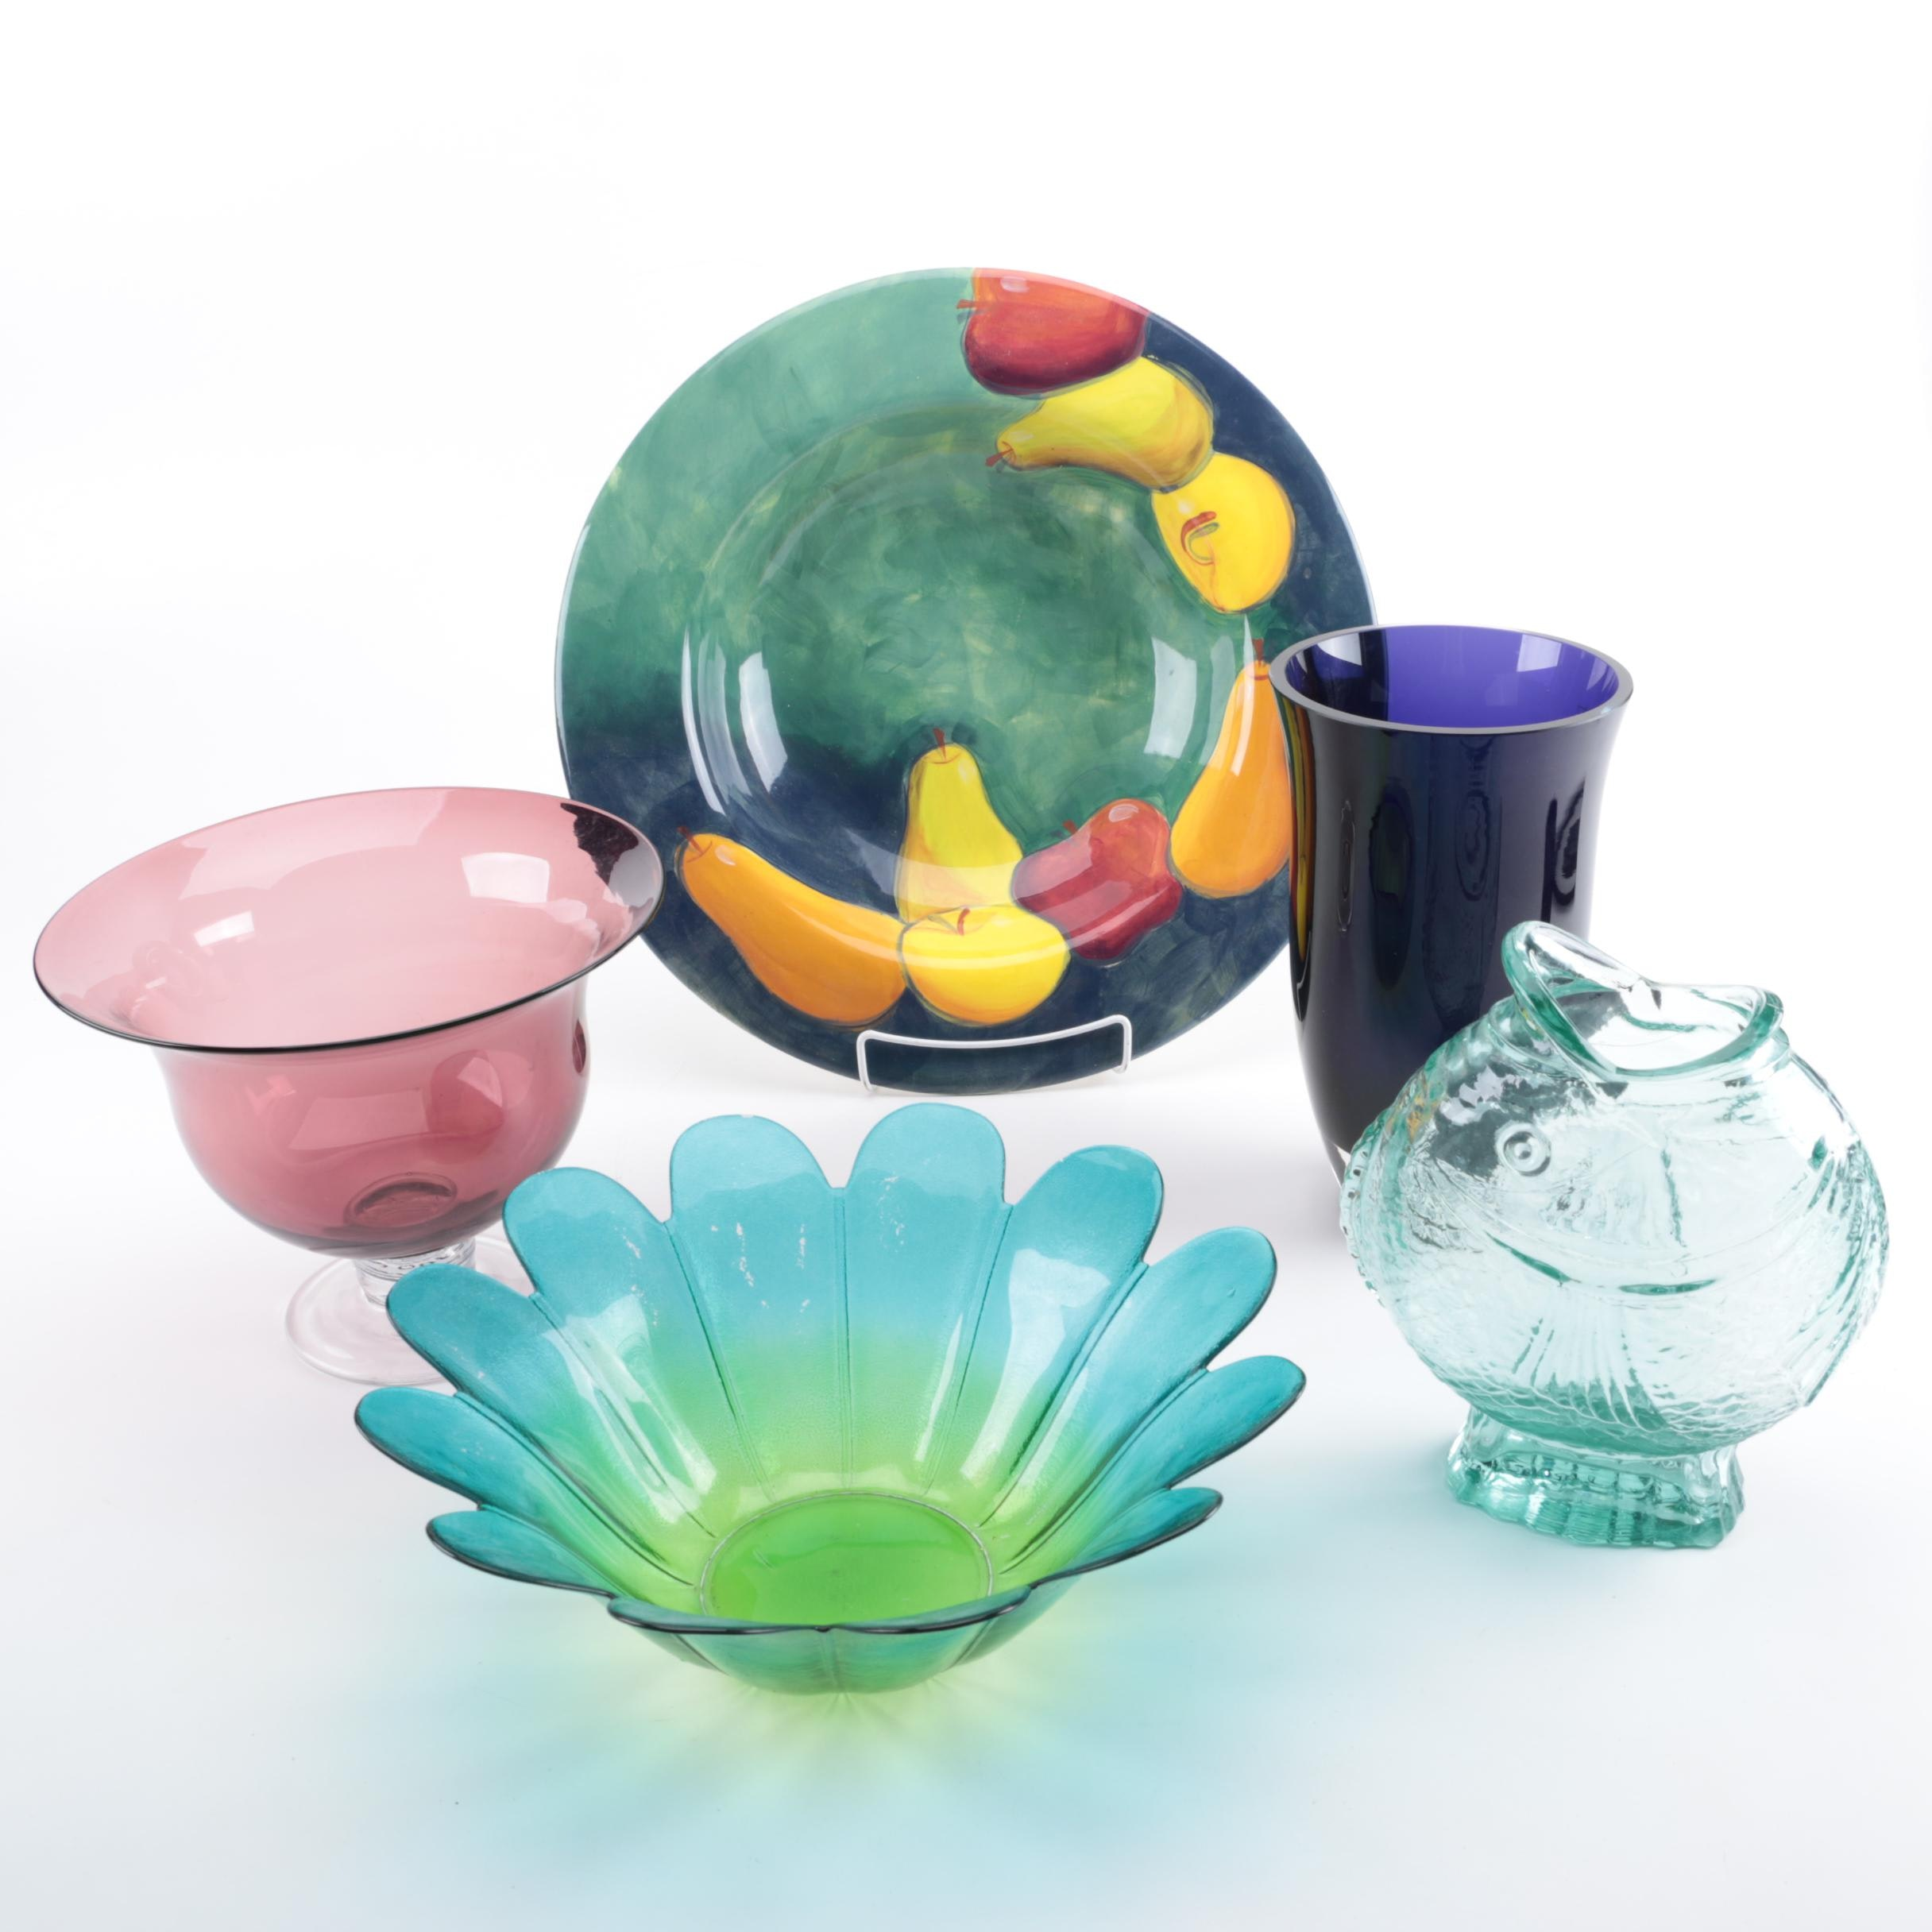 Home Decor Collection Featuring an Art Glass Variety